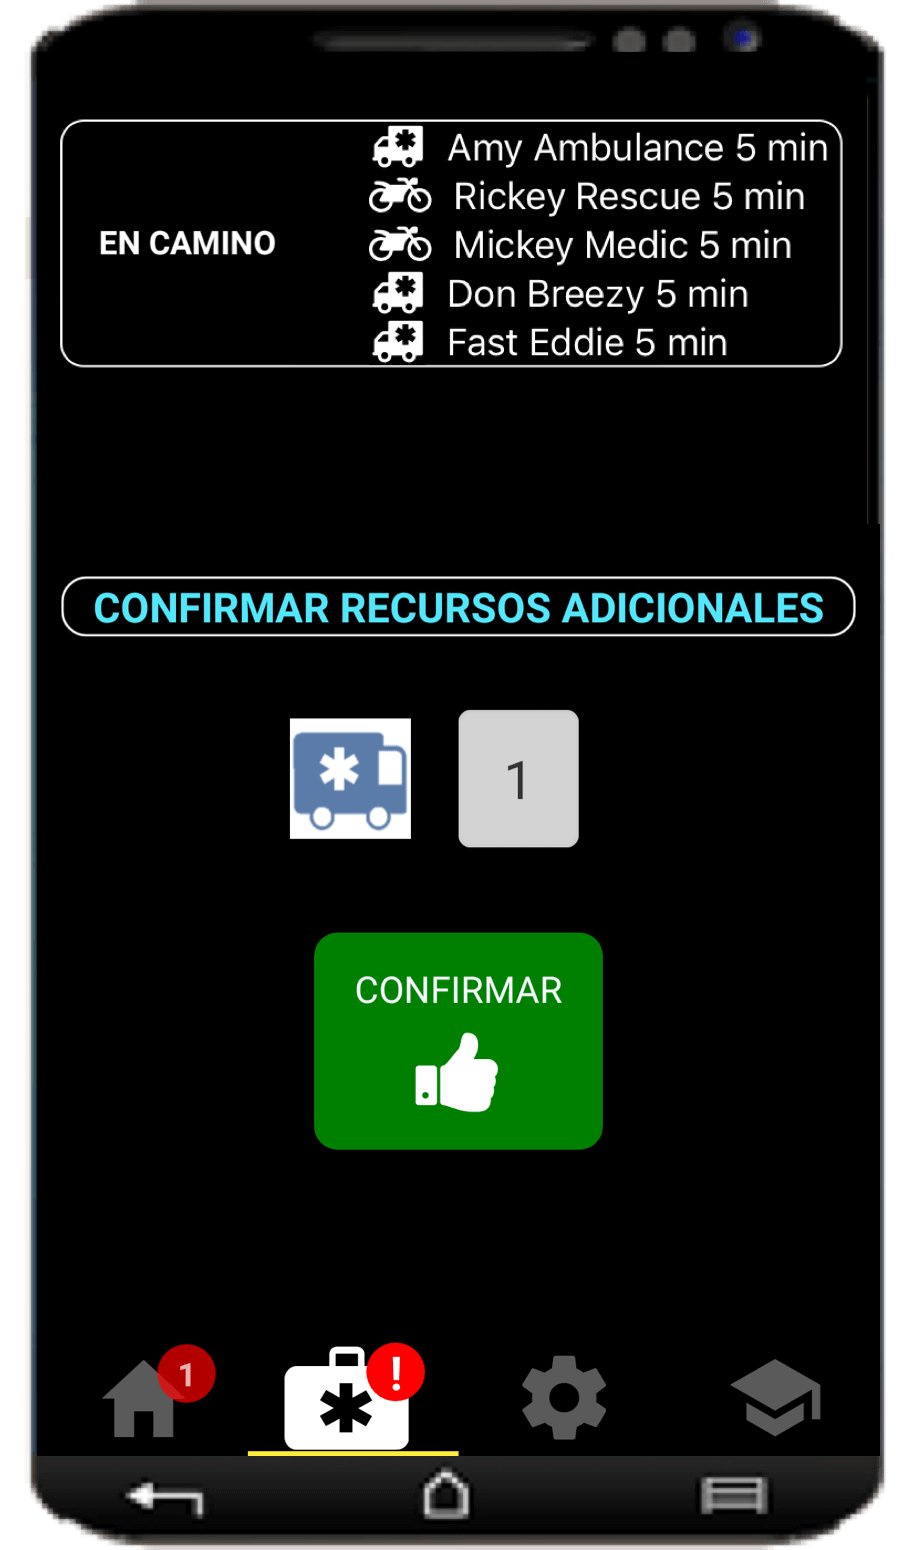 beacon-despacho-de-emergencia_03_recursos-adicionales_android_esp.